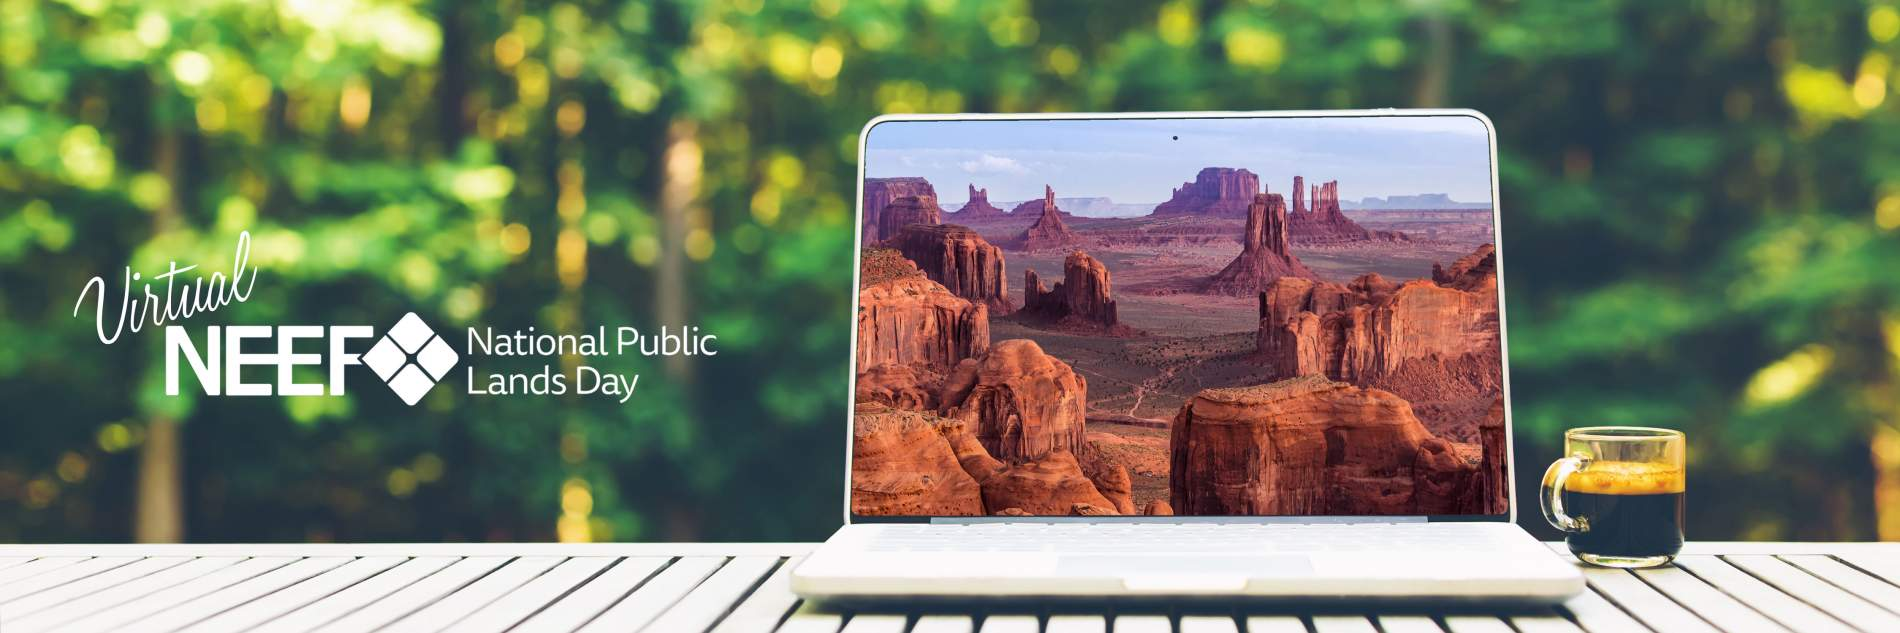 Laptop outside; Copyright: Tierney (https://stock.adobe.com/images/laptop-computer-with-a-forest-background/157483189) and aiisha (https://stock.adobe.com/images/sunrise-in-hunts-mesa-navajo-tribal-majesty-place-near-monument-valley-arizona-usa/179528816)